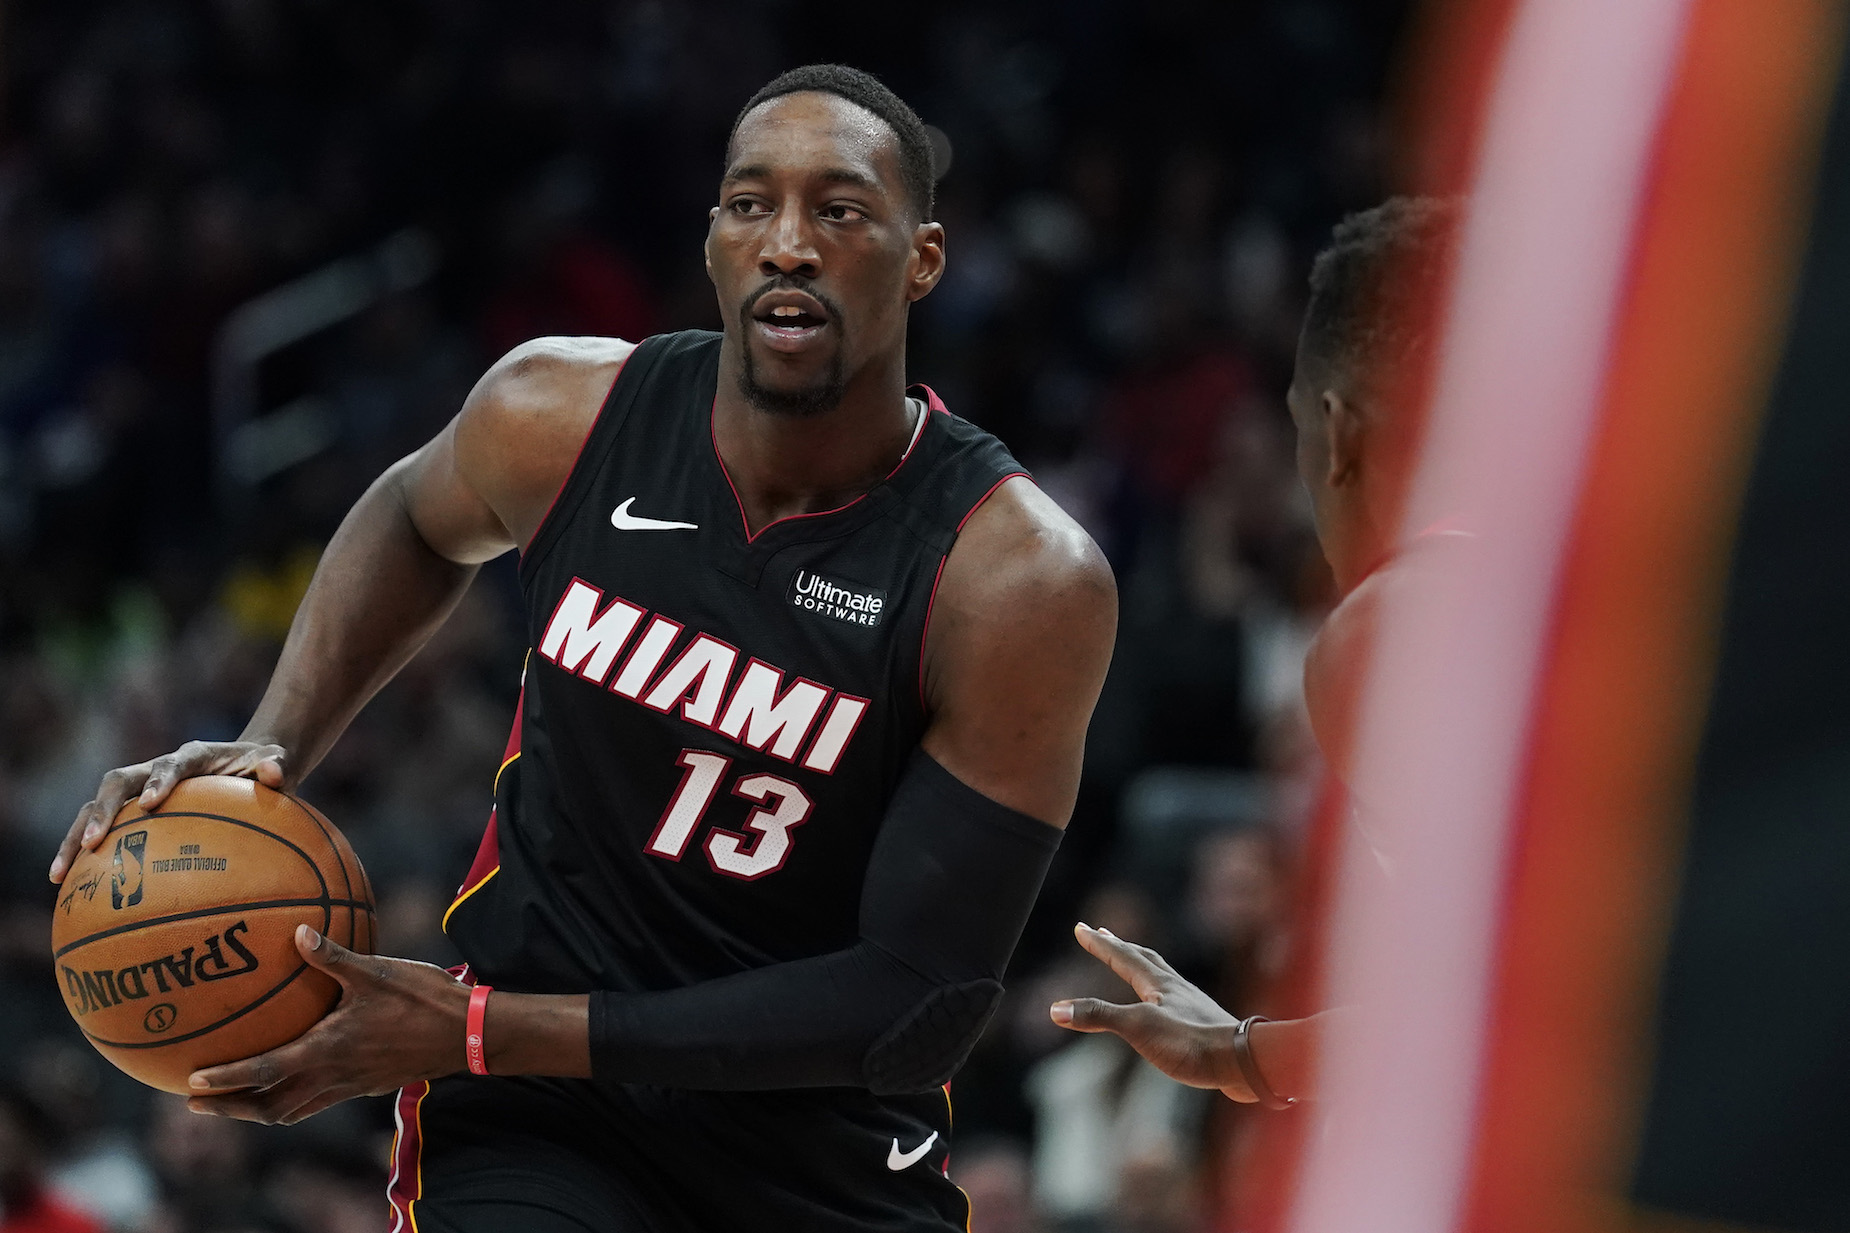 Miami Heat big man Bam Adebayo signed a massive contract extension, then gifted his mother a house.